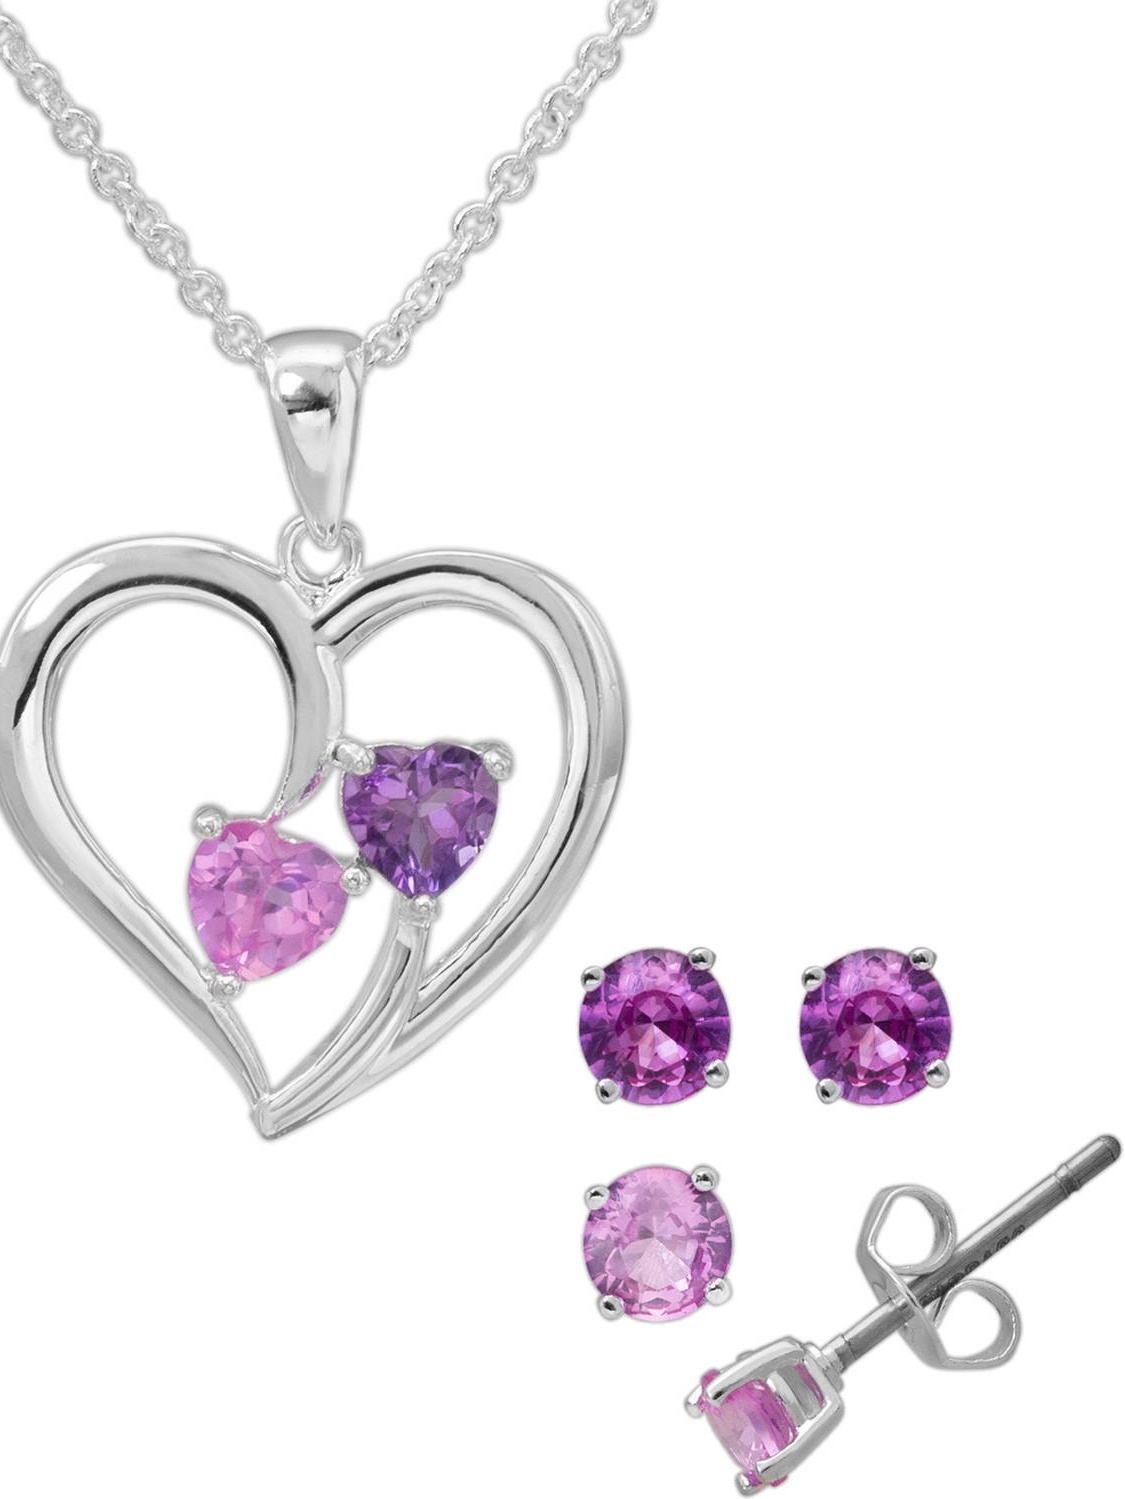 Crystal Silver-Plated Heart Pendant and Stud Earring Set